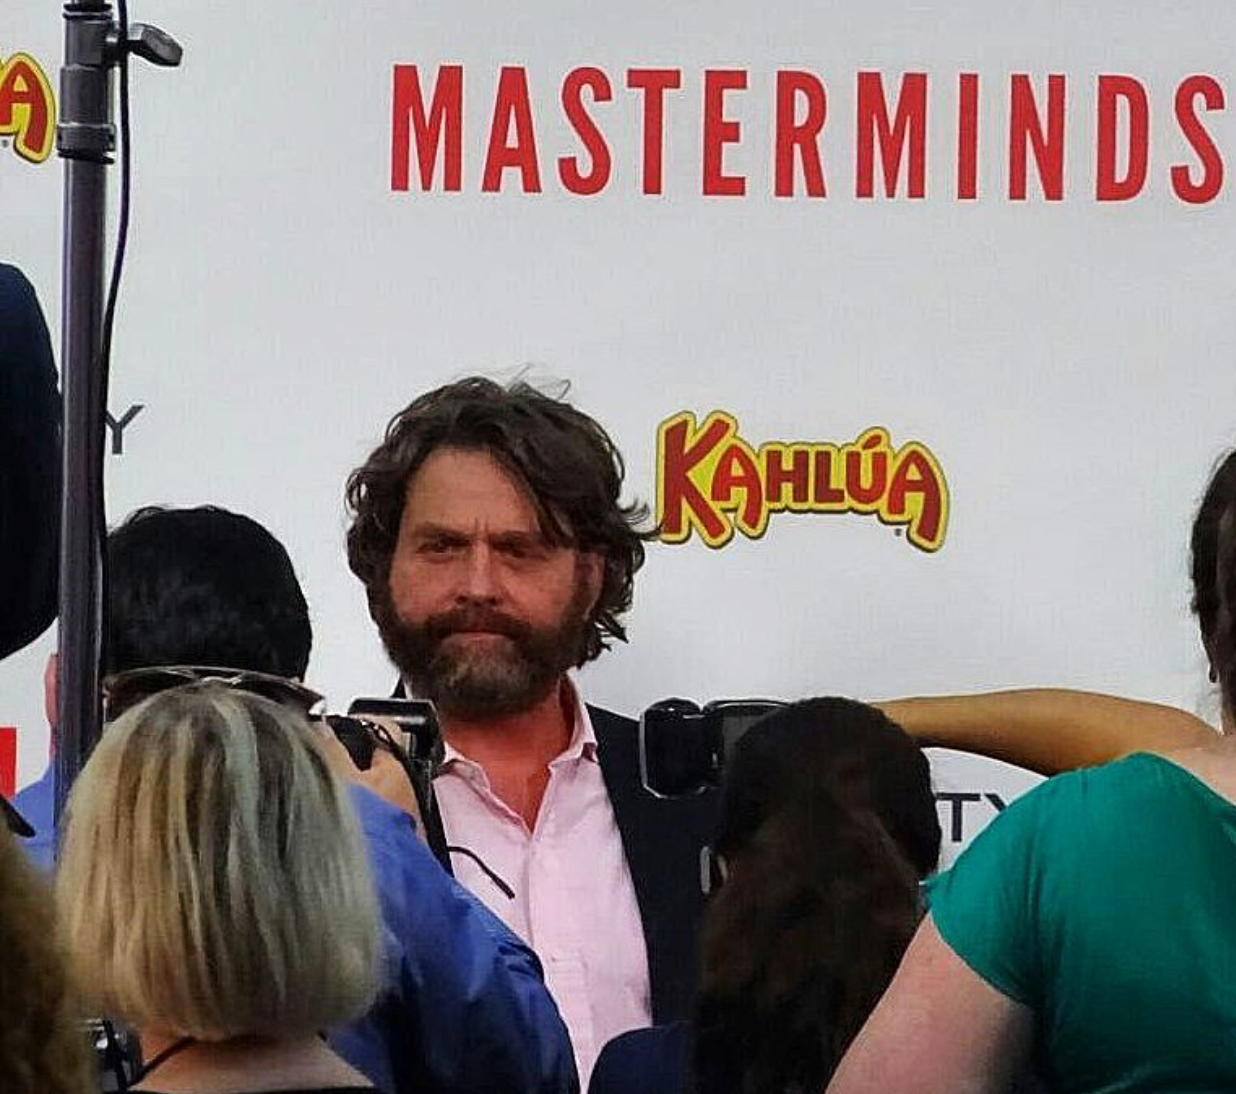 masterminds-movie-premiere-zach-galifianakis